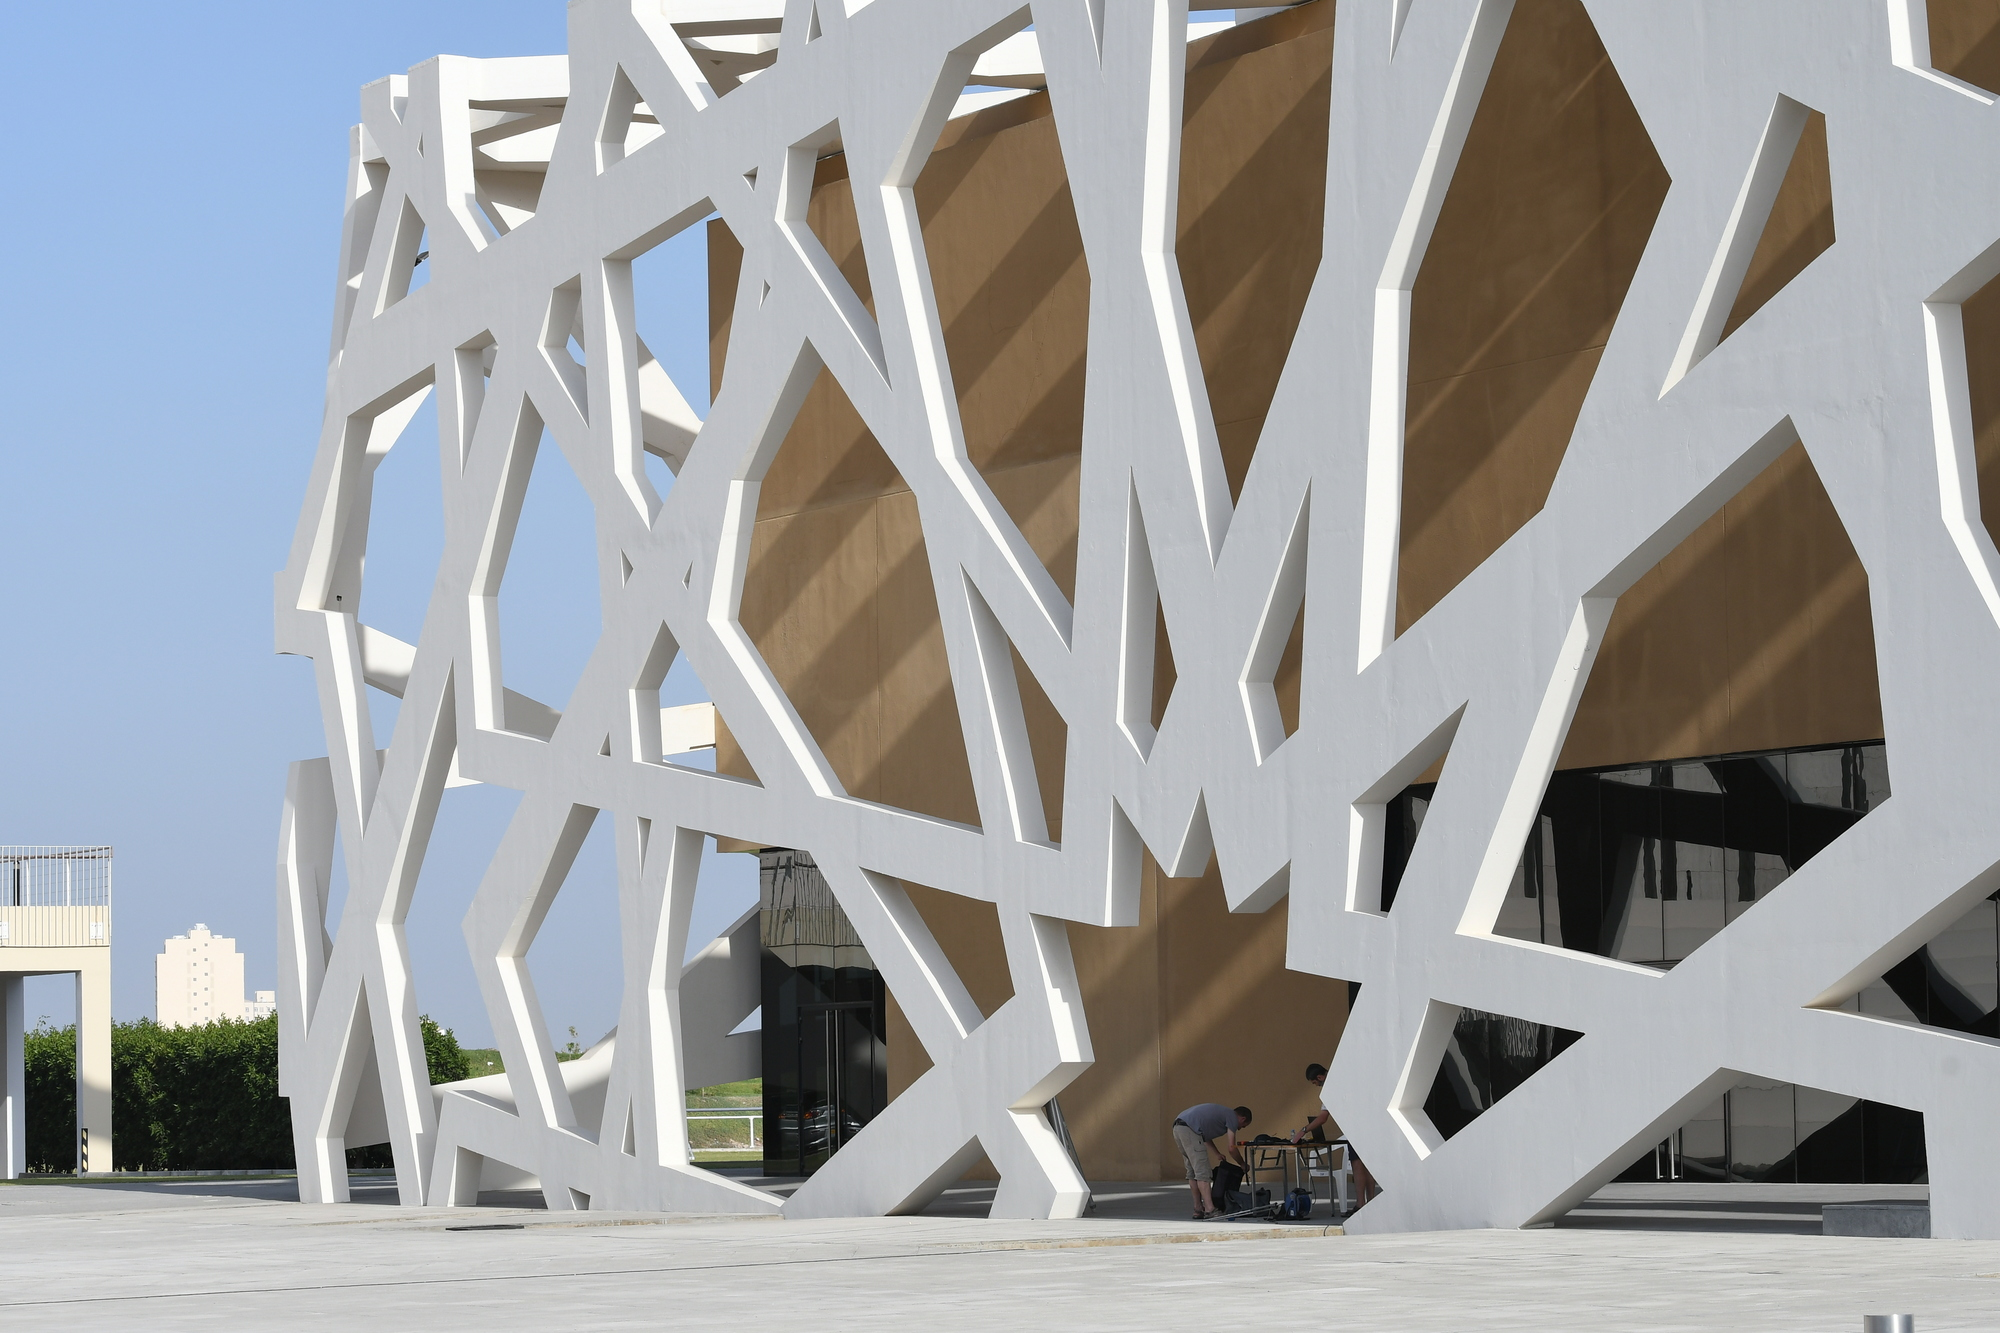 History of Science Centre / Hoehler + alSalmy